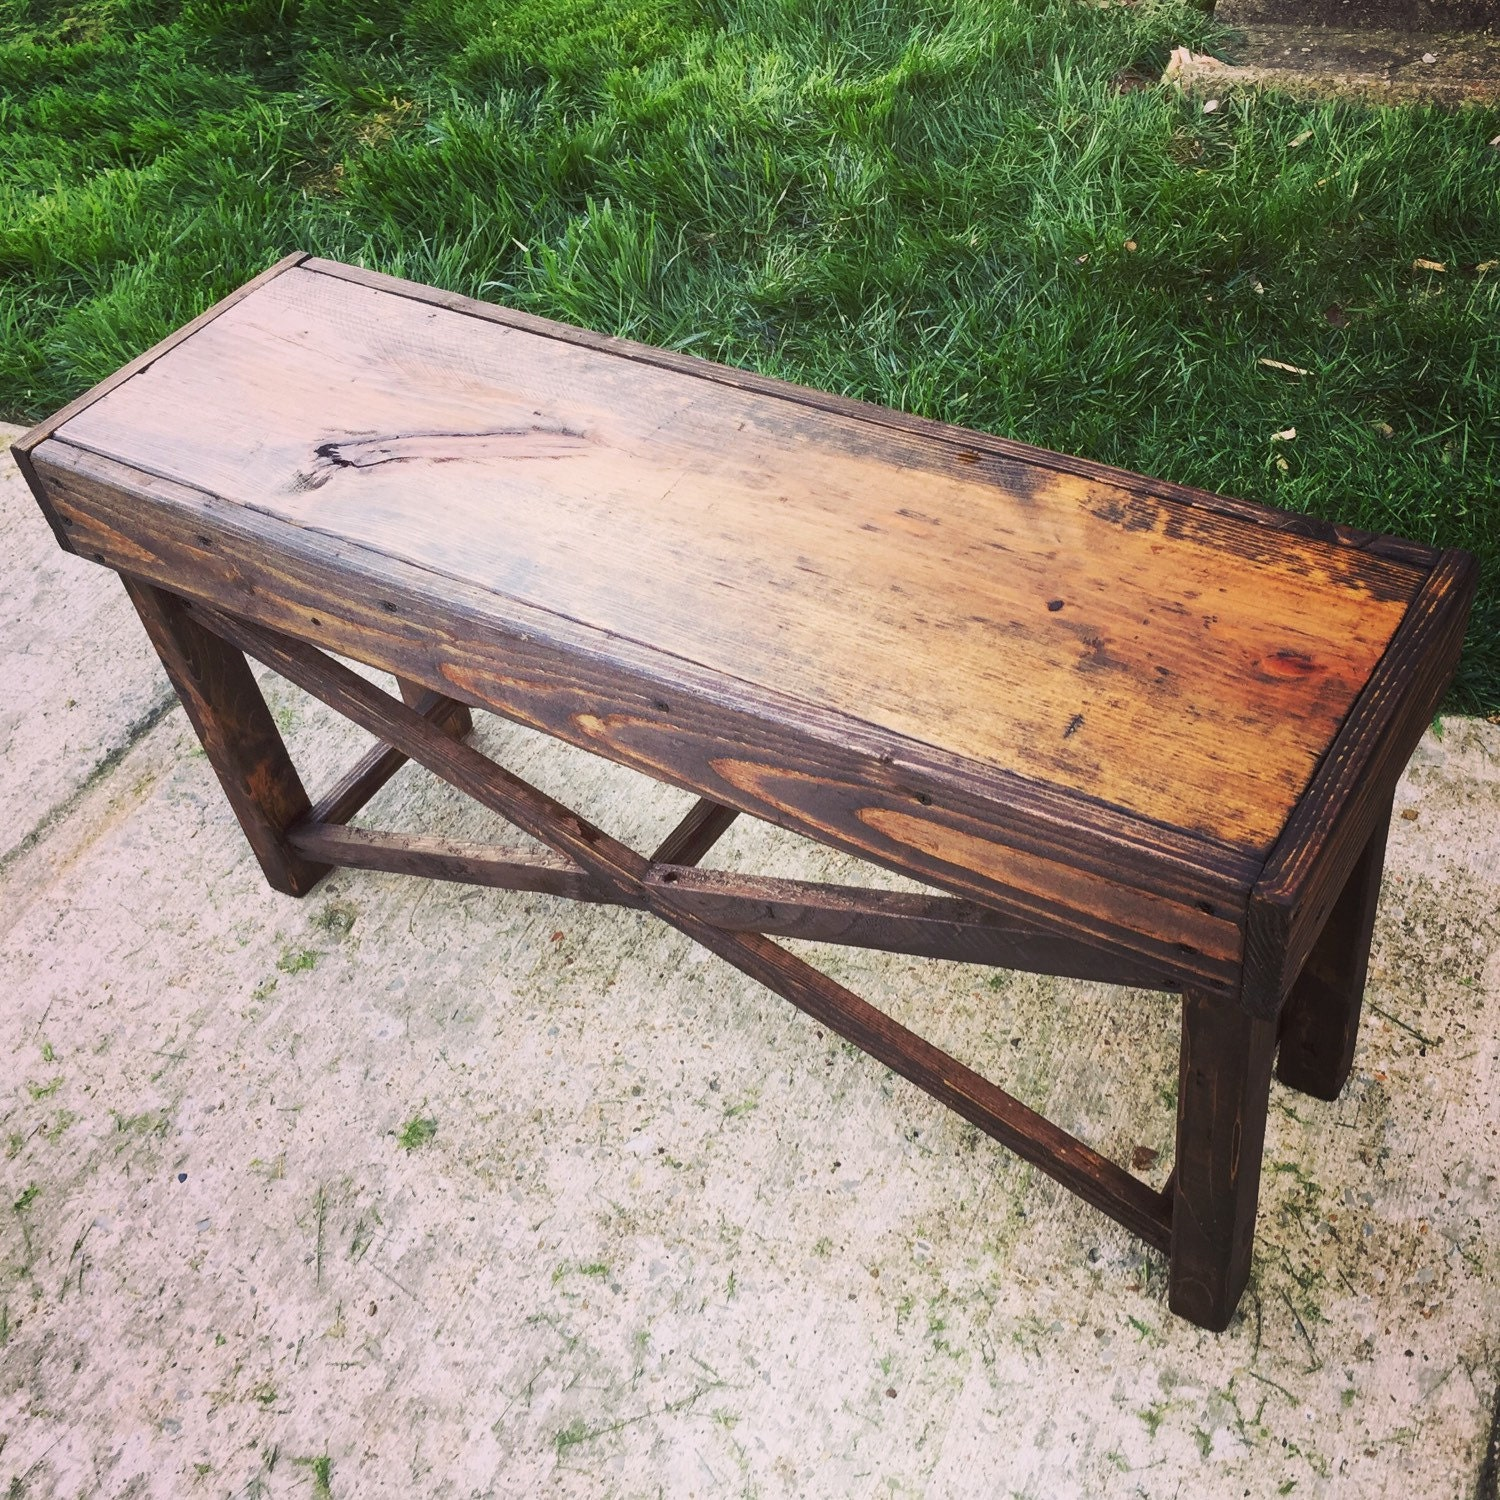 Reclaimed Handmade Wood Bench Furniture By Salvagedandsaved